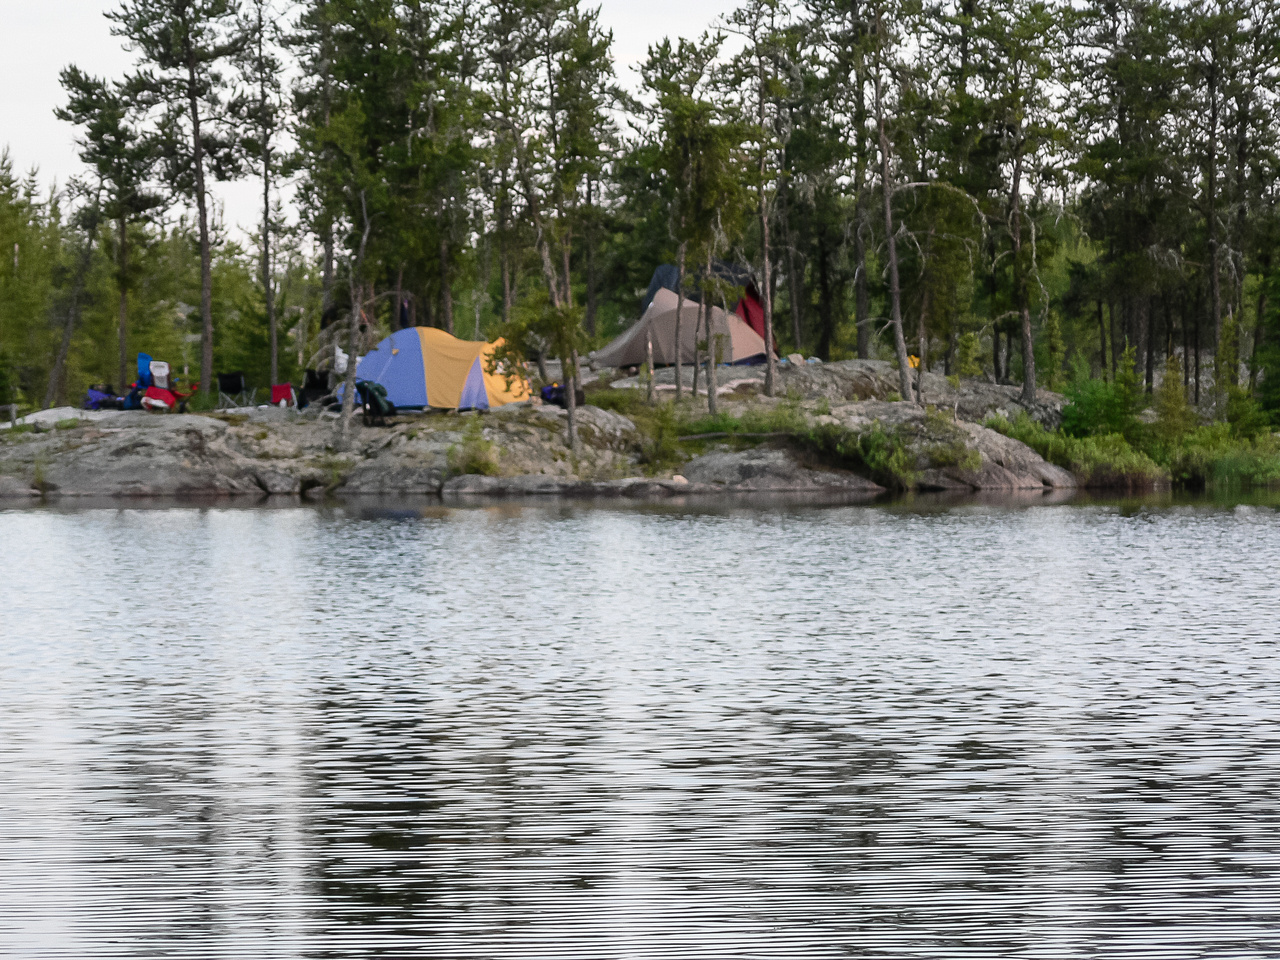 Our camp site on Jestor Lake.